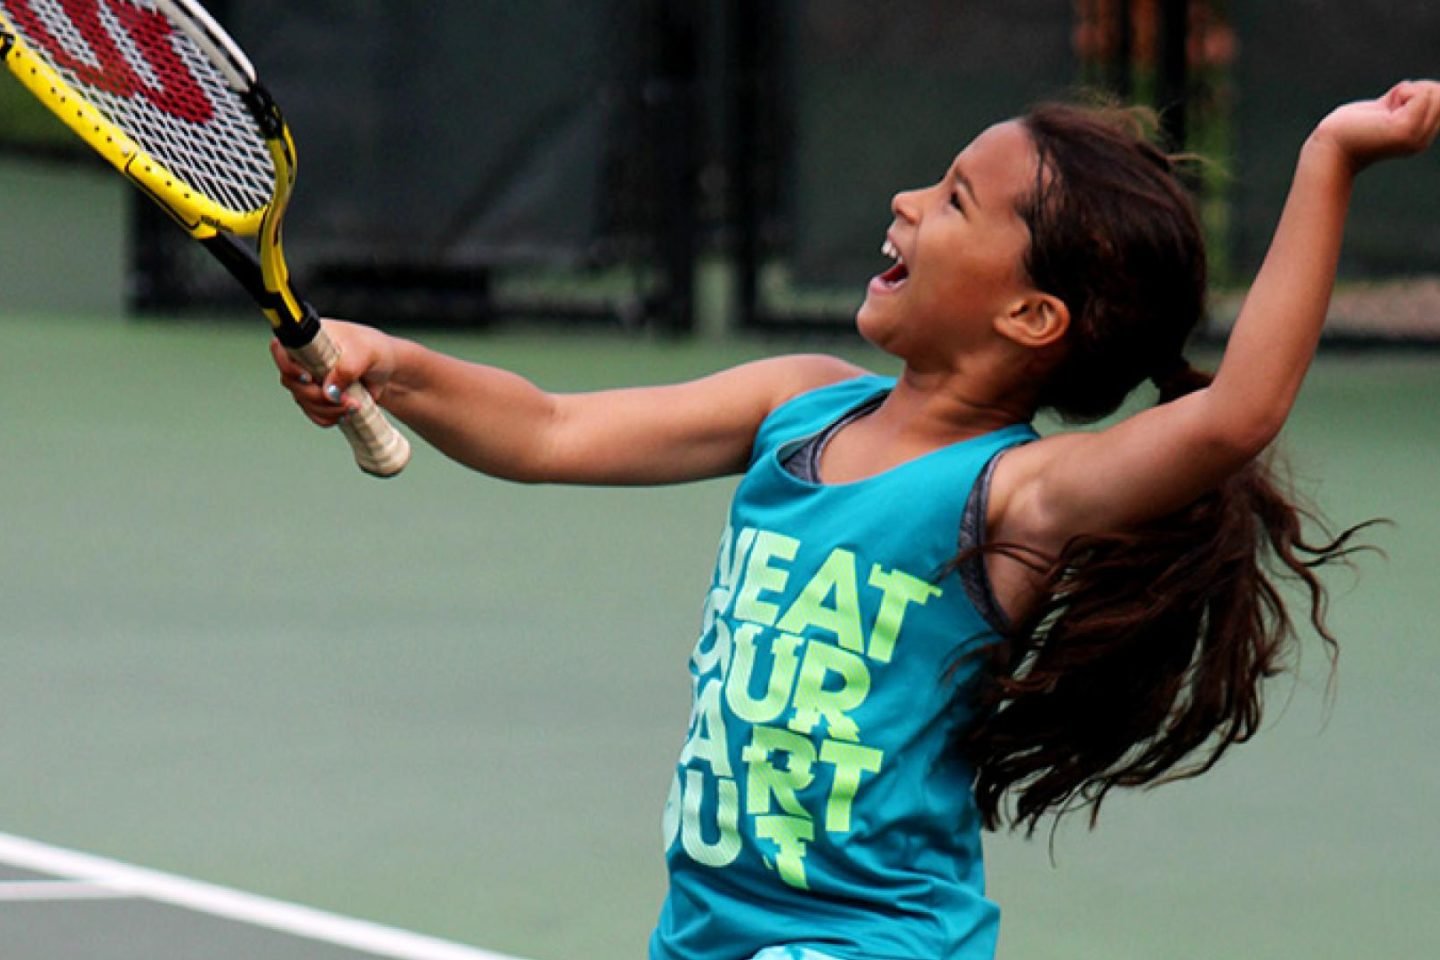 kids-tennis-lessons-in-charlottesville